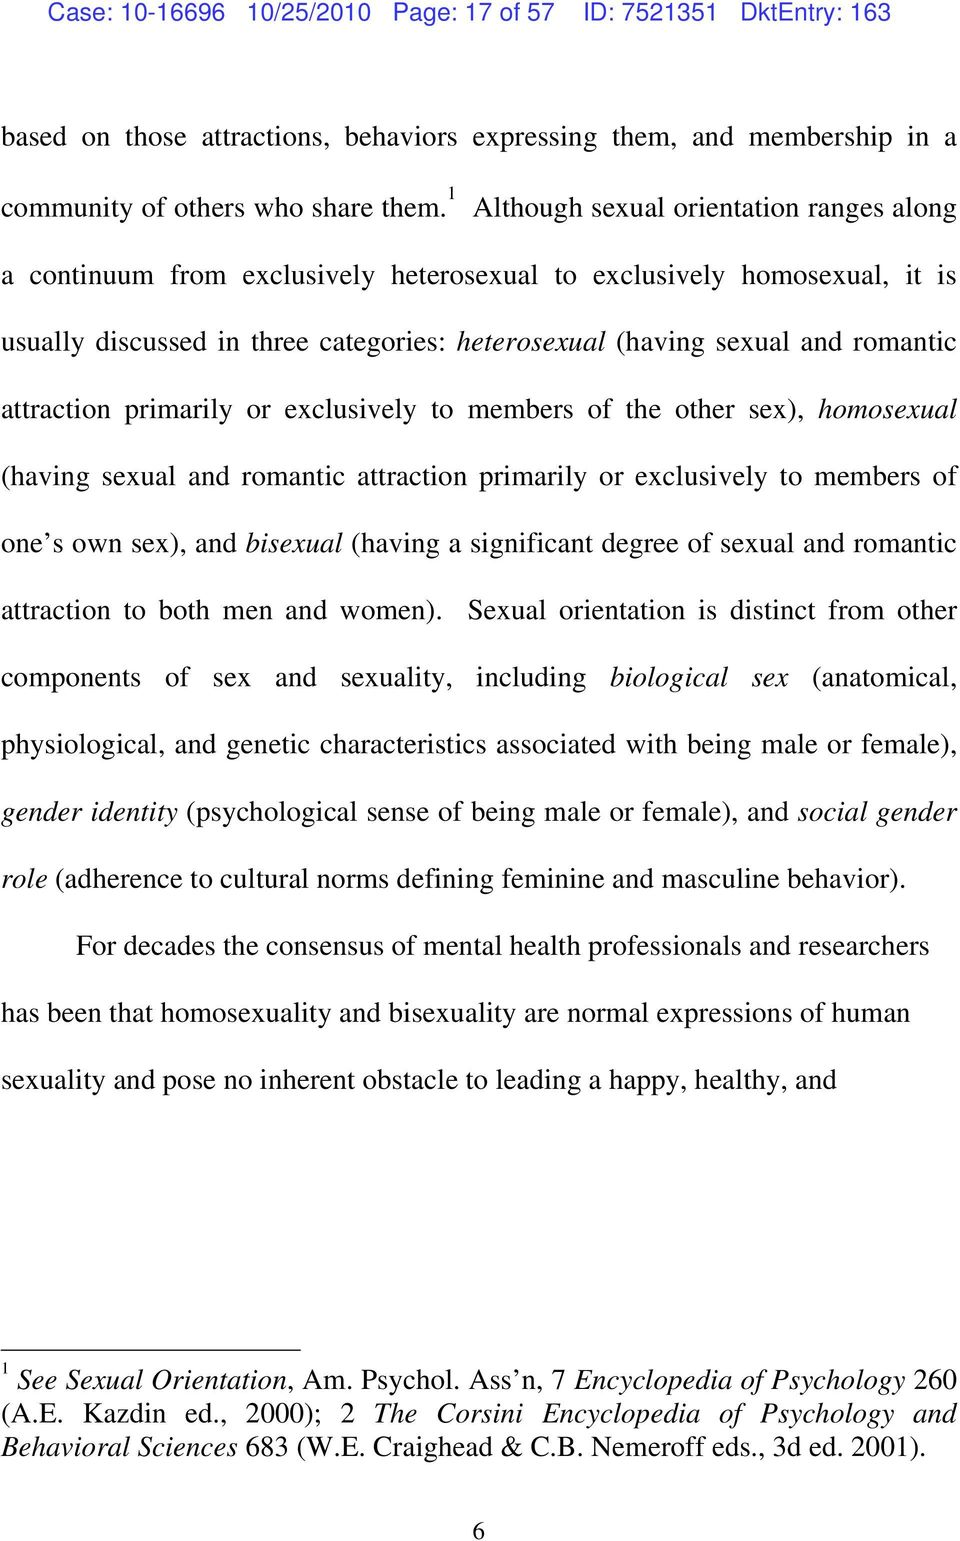 attraction primarily or exclusively to members of the other sex), homosexual (having sexual and romantic attraction primarily or exclusively to members of one s own sex), and bisexual (having a